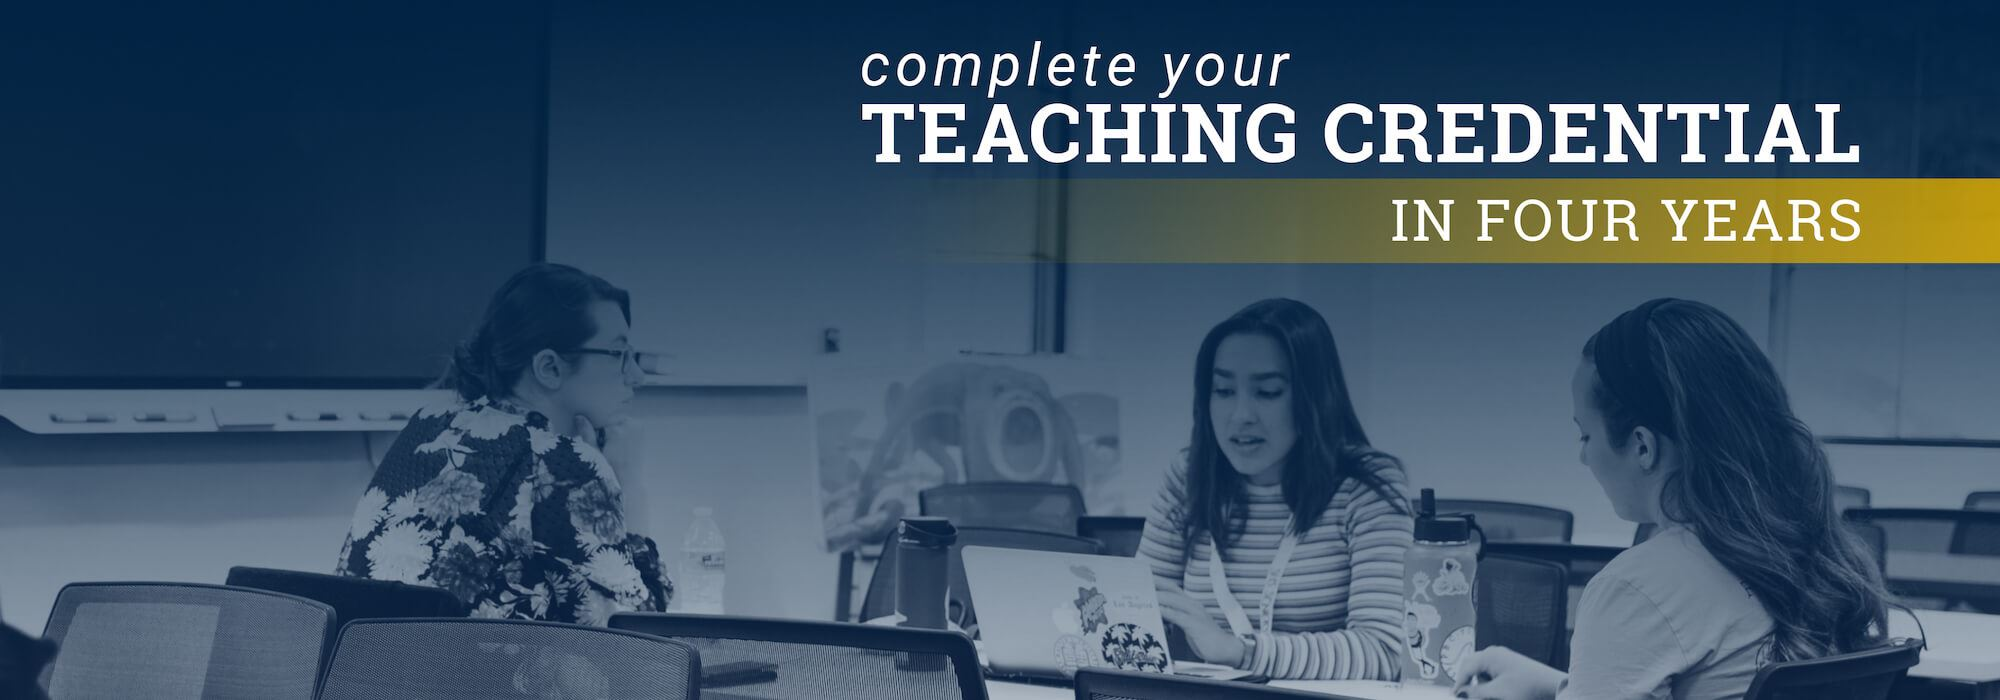 Complete Your Teaching Credential in Four Years